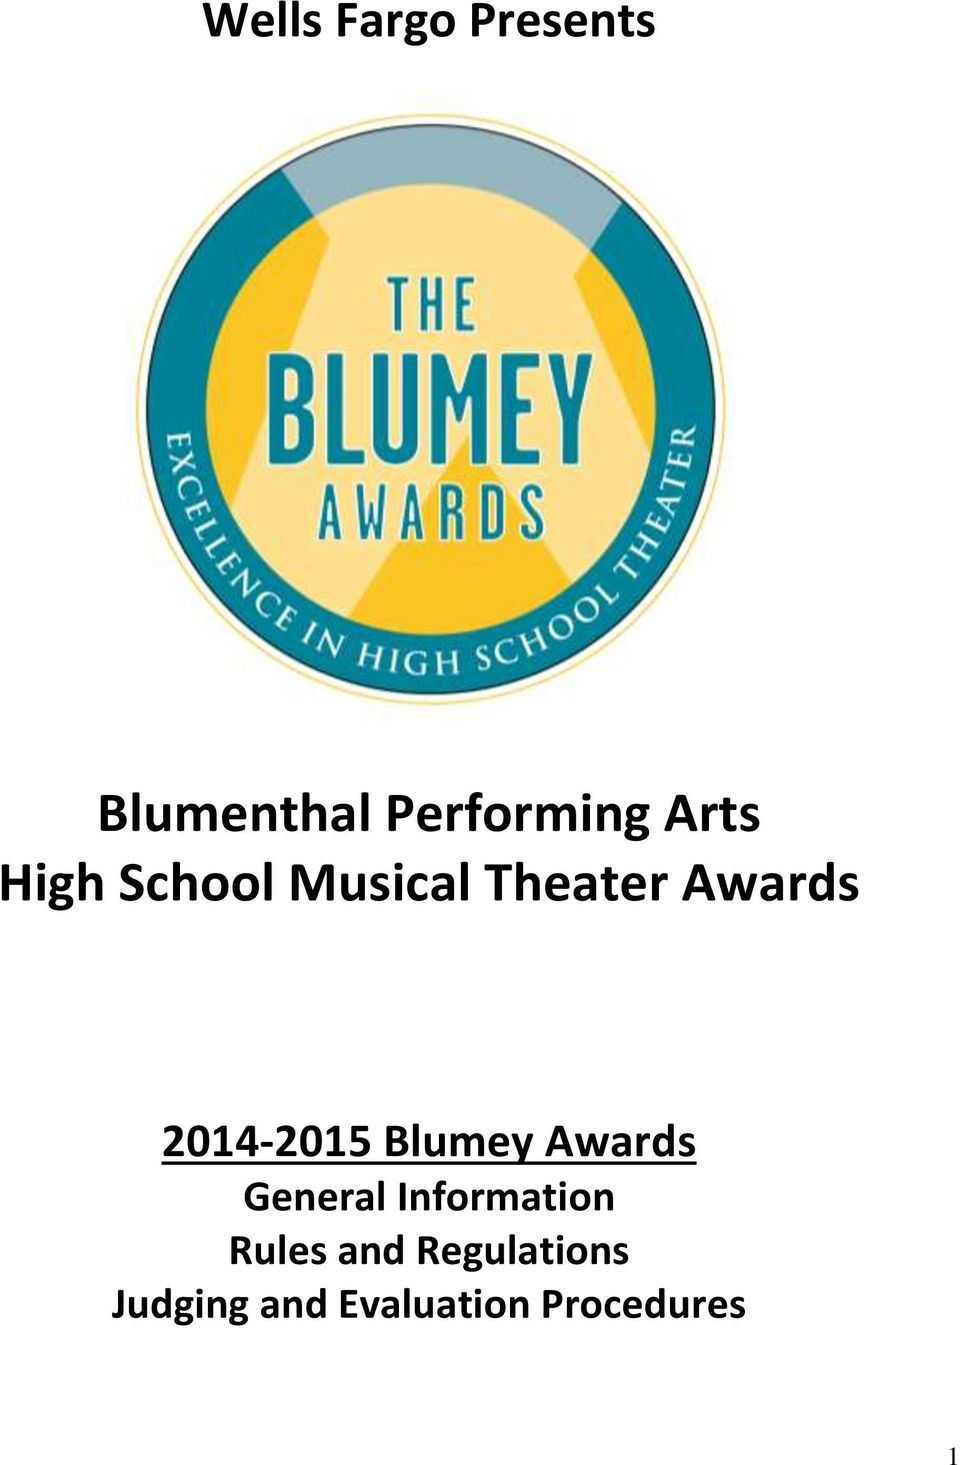 2014-2015 Blumey Awards General Information